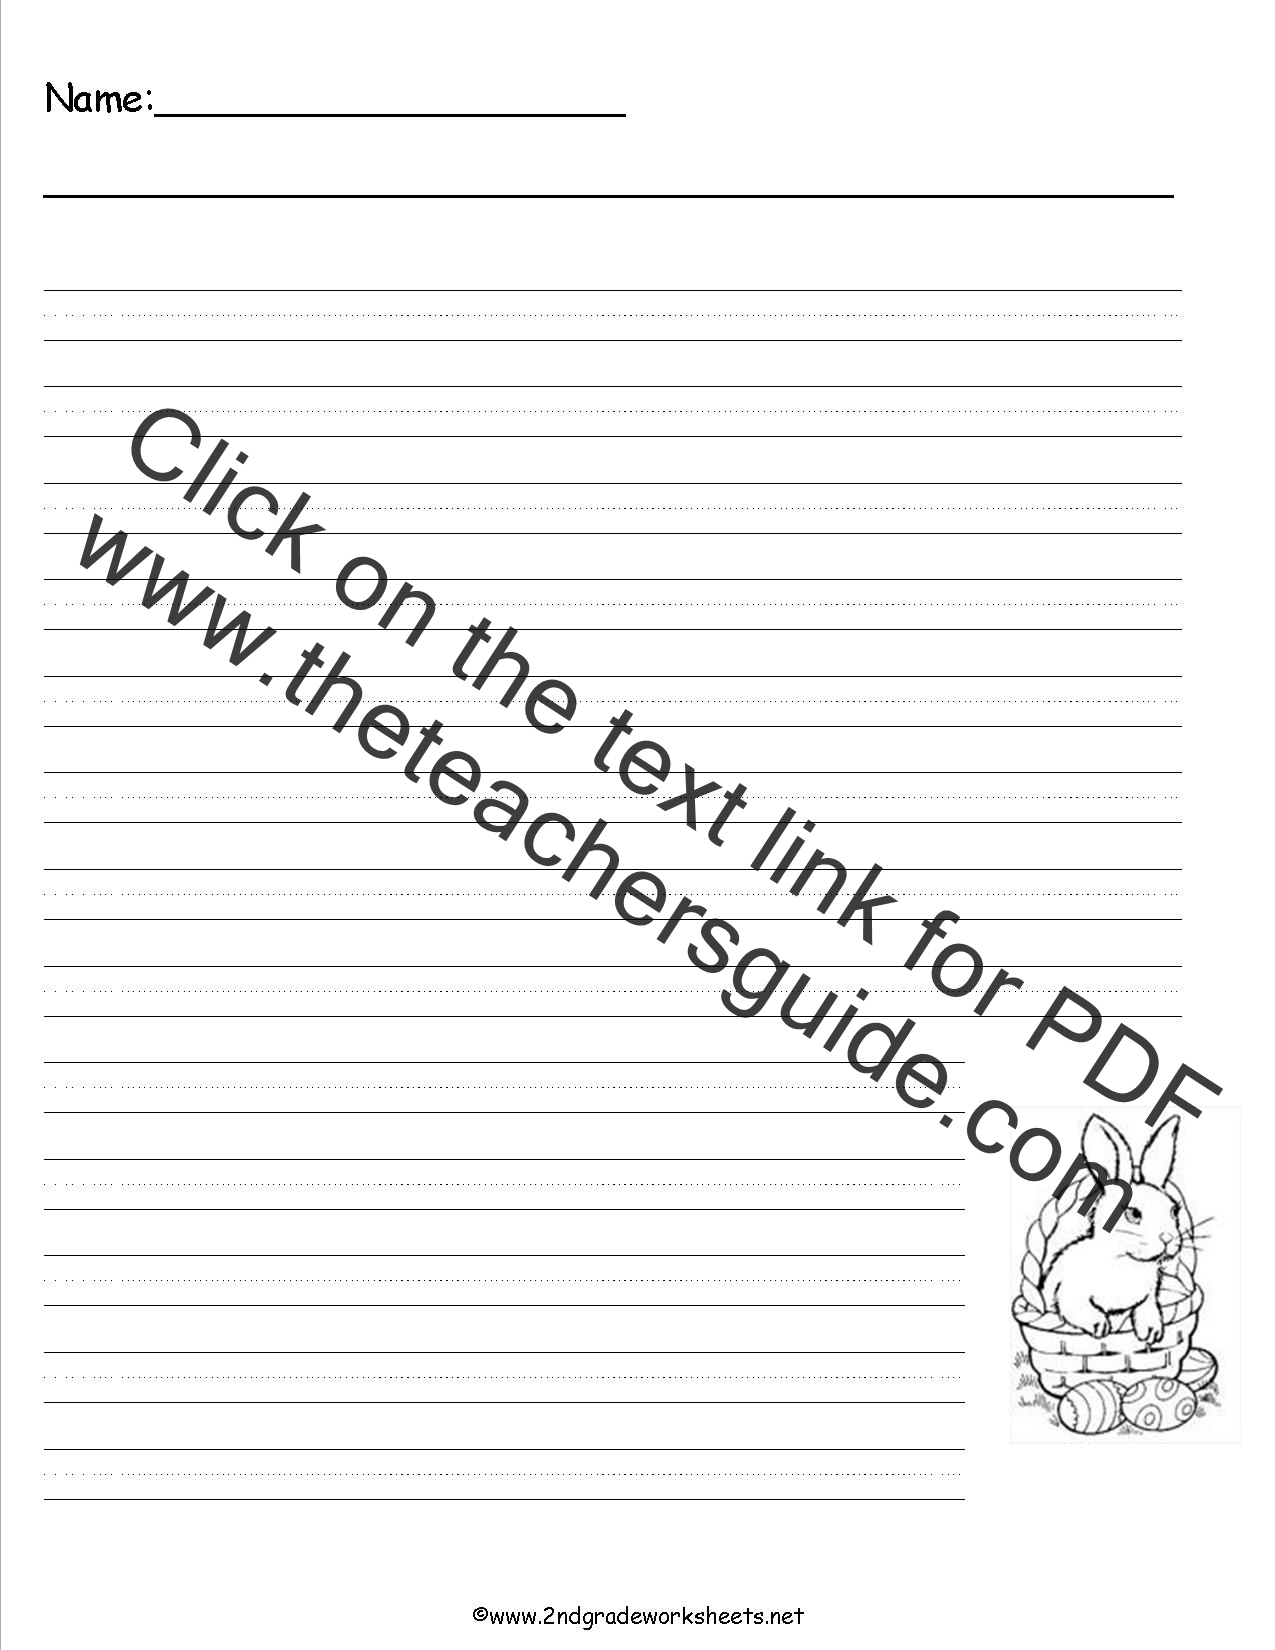 worksheet Point Of View Worksheets For Middle School easter worksheets and printouts writing paper